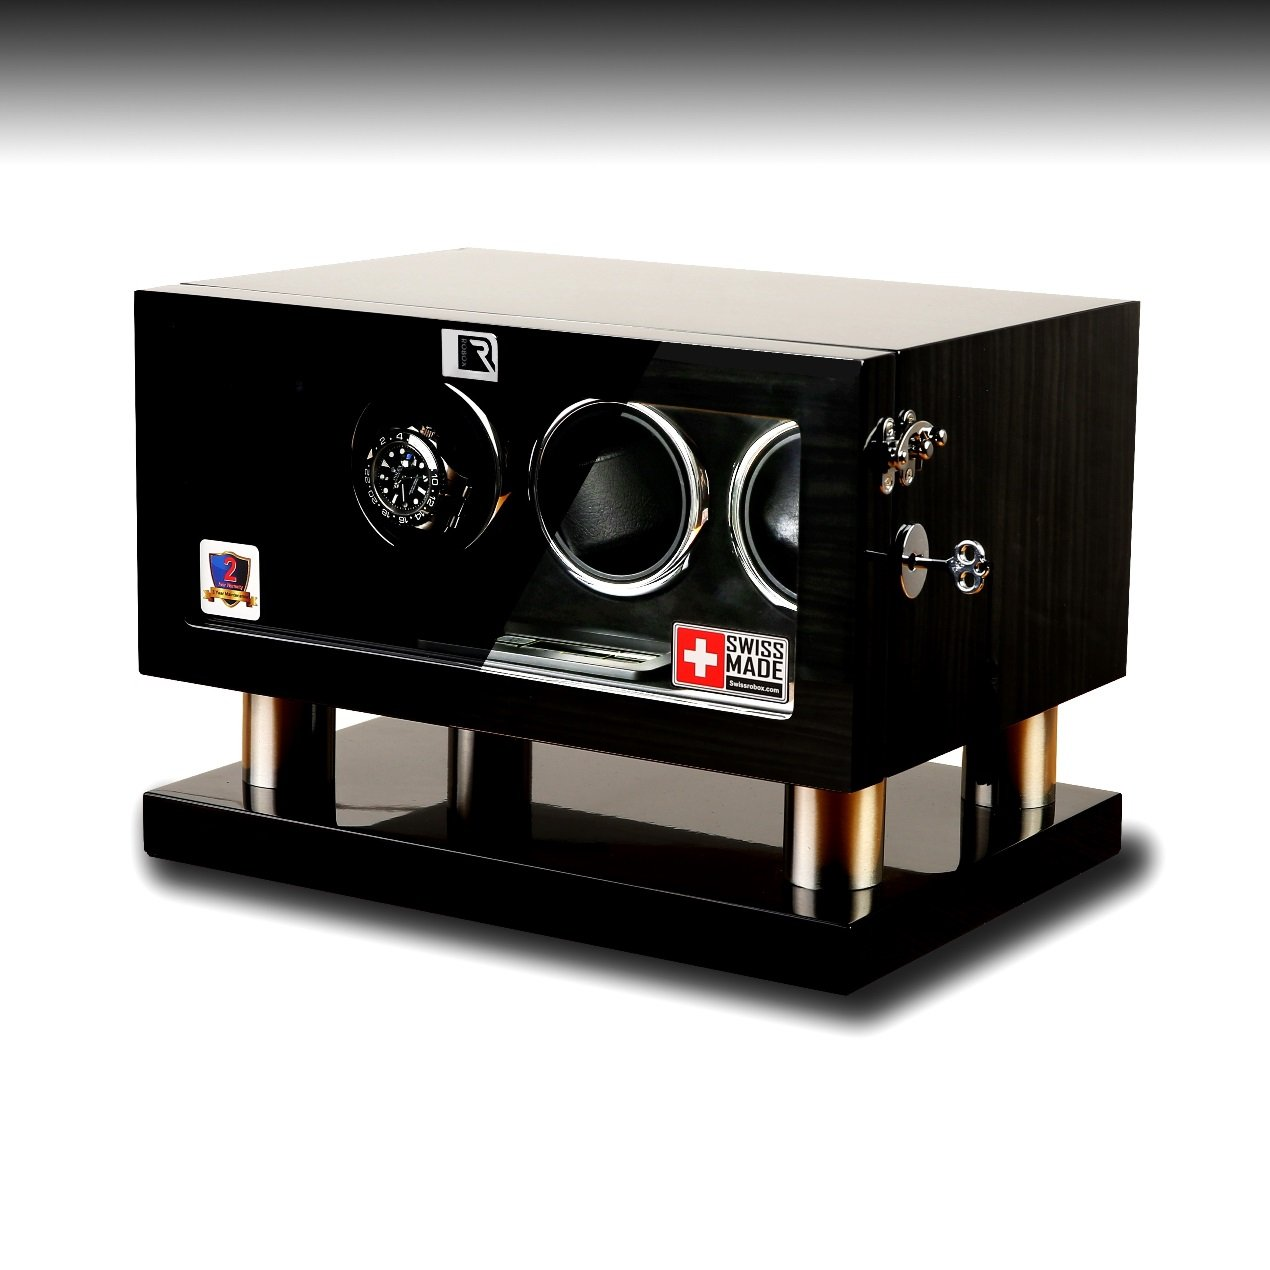 About SWISS ROBOX COMPANY - Specializing in manufacturing watch winder box